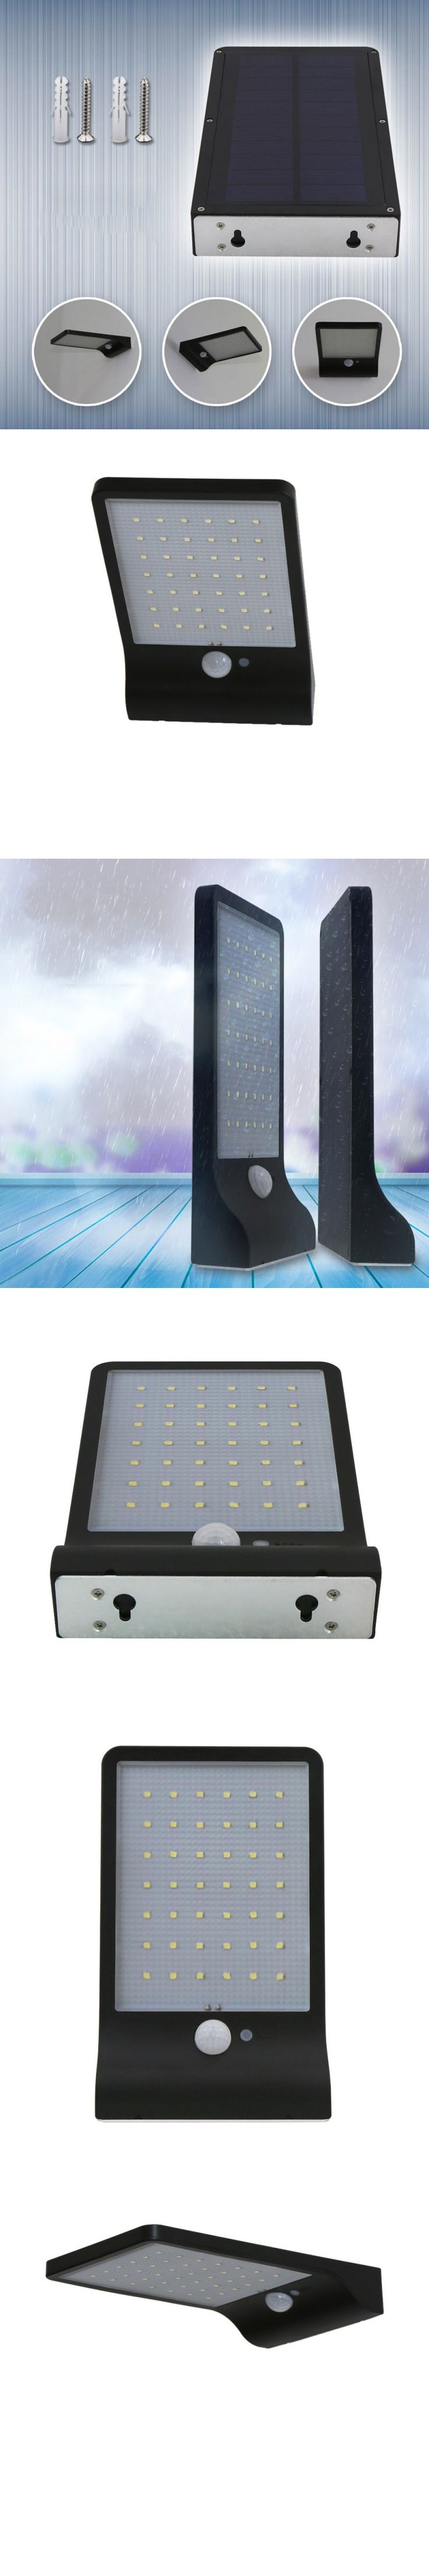 Street Waterproof Wall Lights 450LM 36 LED Solar Power Street Light PIR Motion Sensor Lamps Garden Security Lamp Outdoor